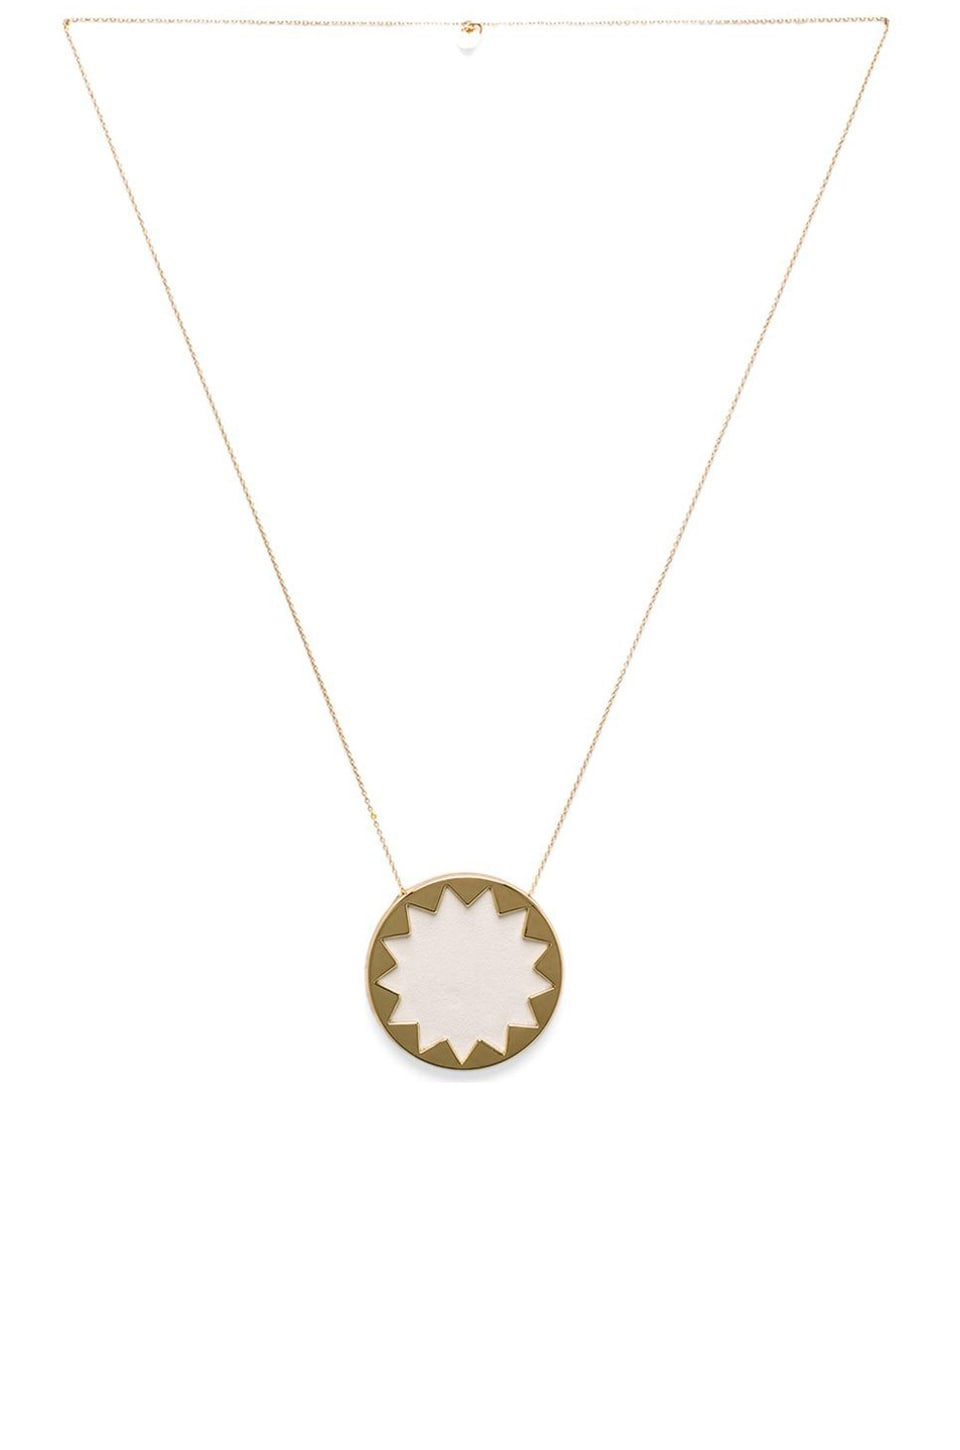 House of Harlow 1960 House of Harlow Sunburst Pendant Necklace in White